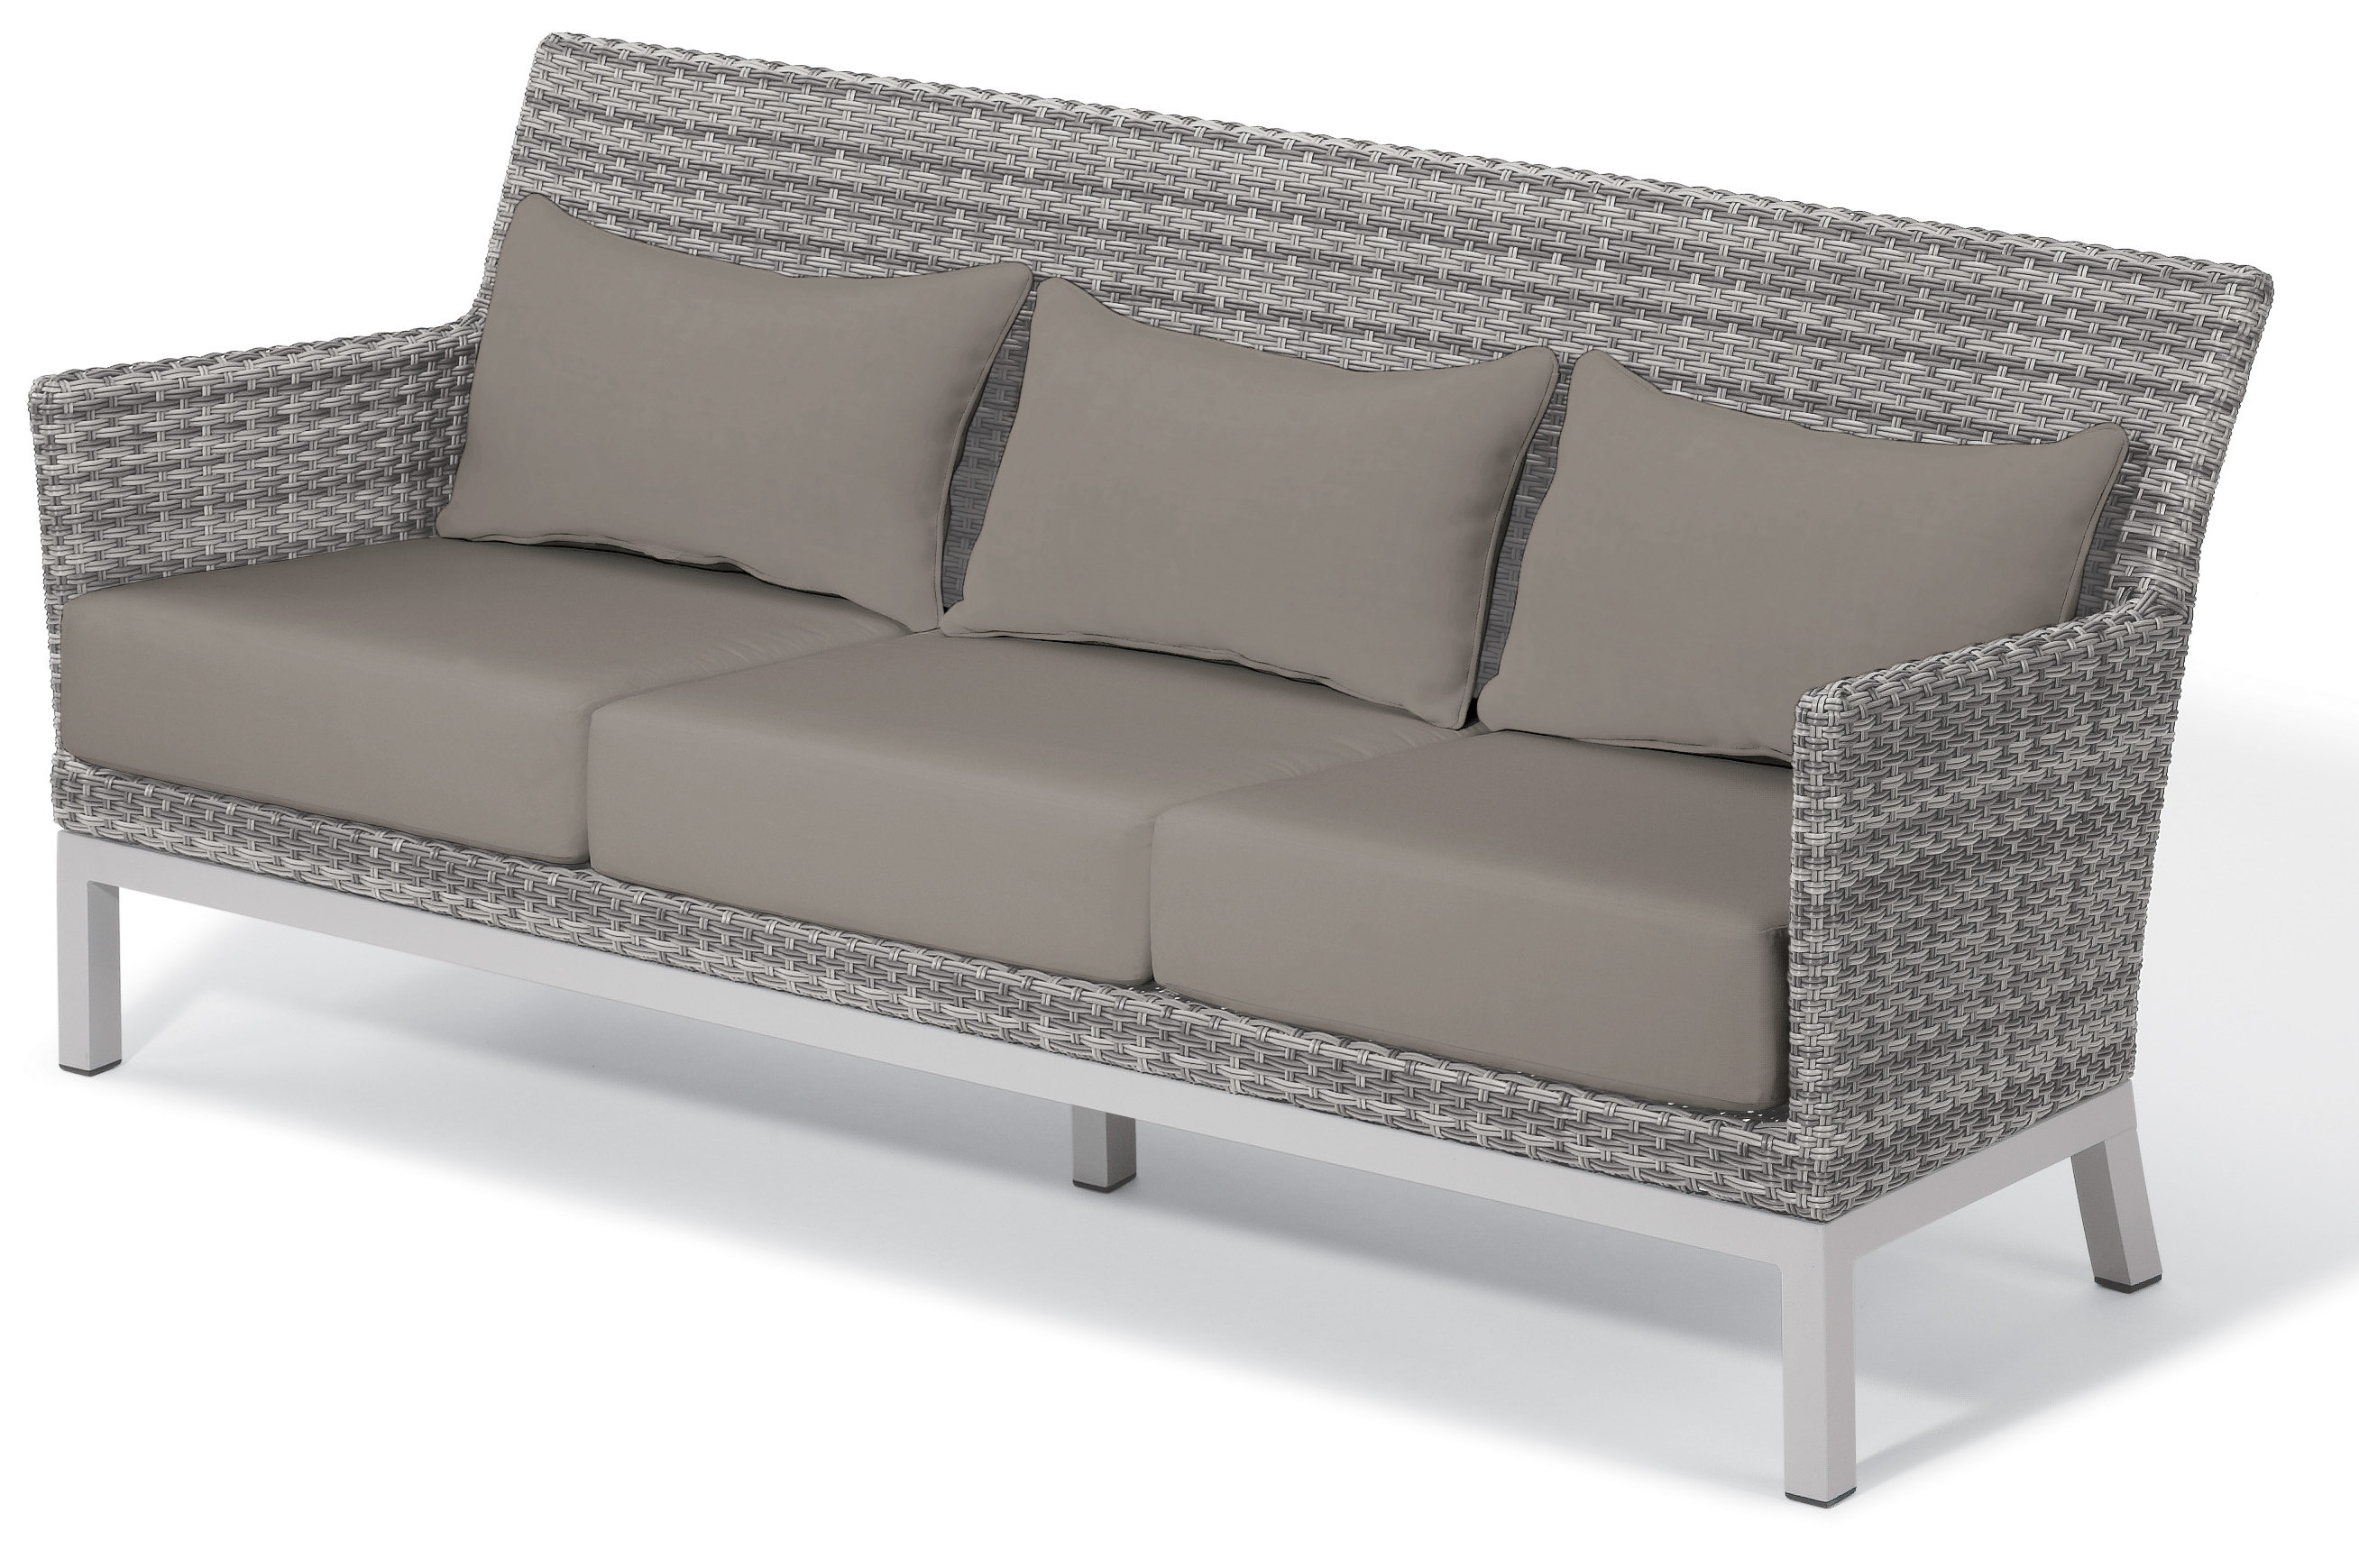 2019 Saleem Patio Sofa With Cushions Within Keever Patio Sofas With Sunbrella Cushions (View 6 of 20)